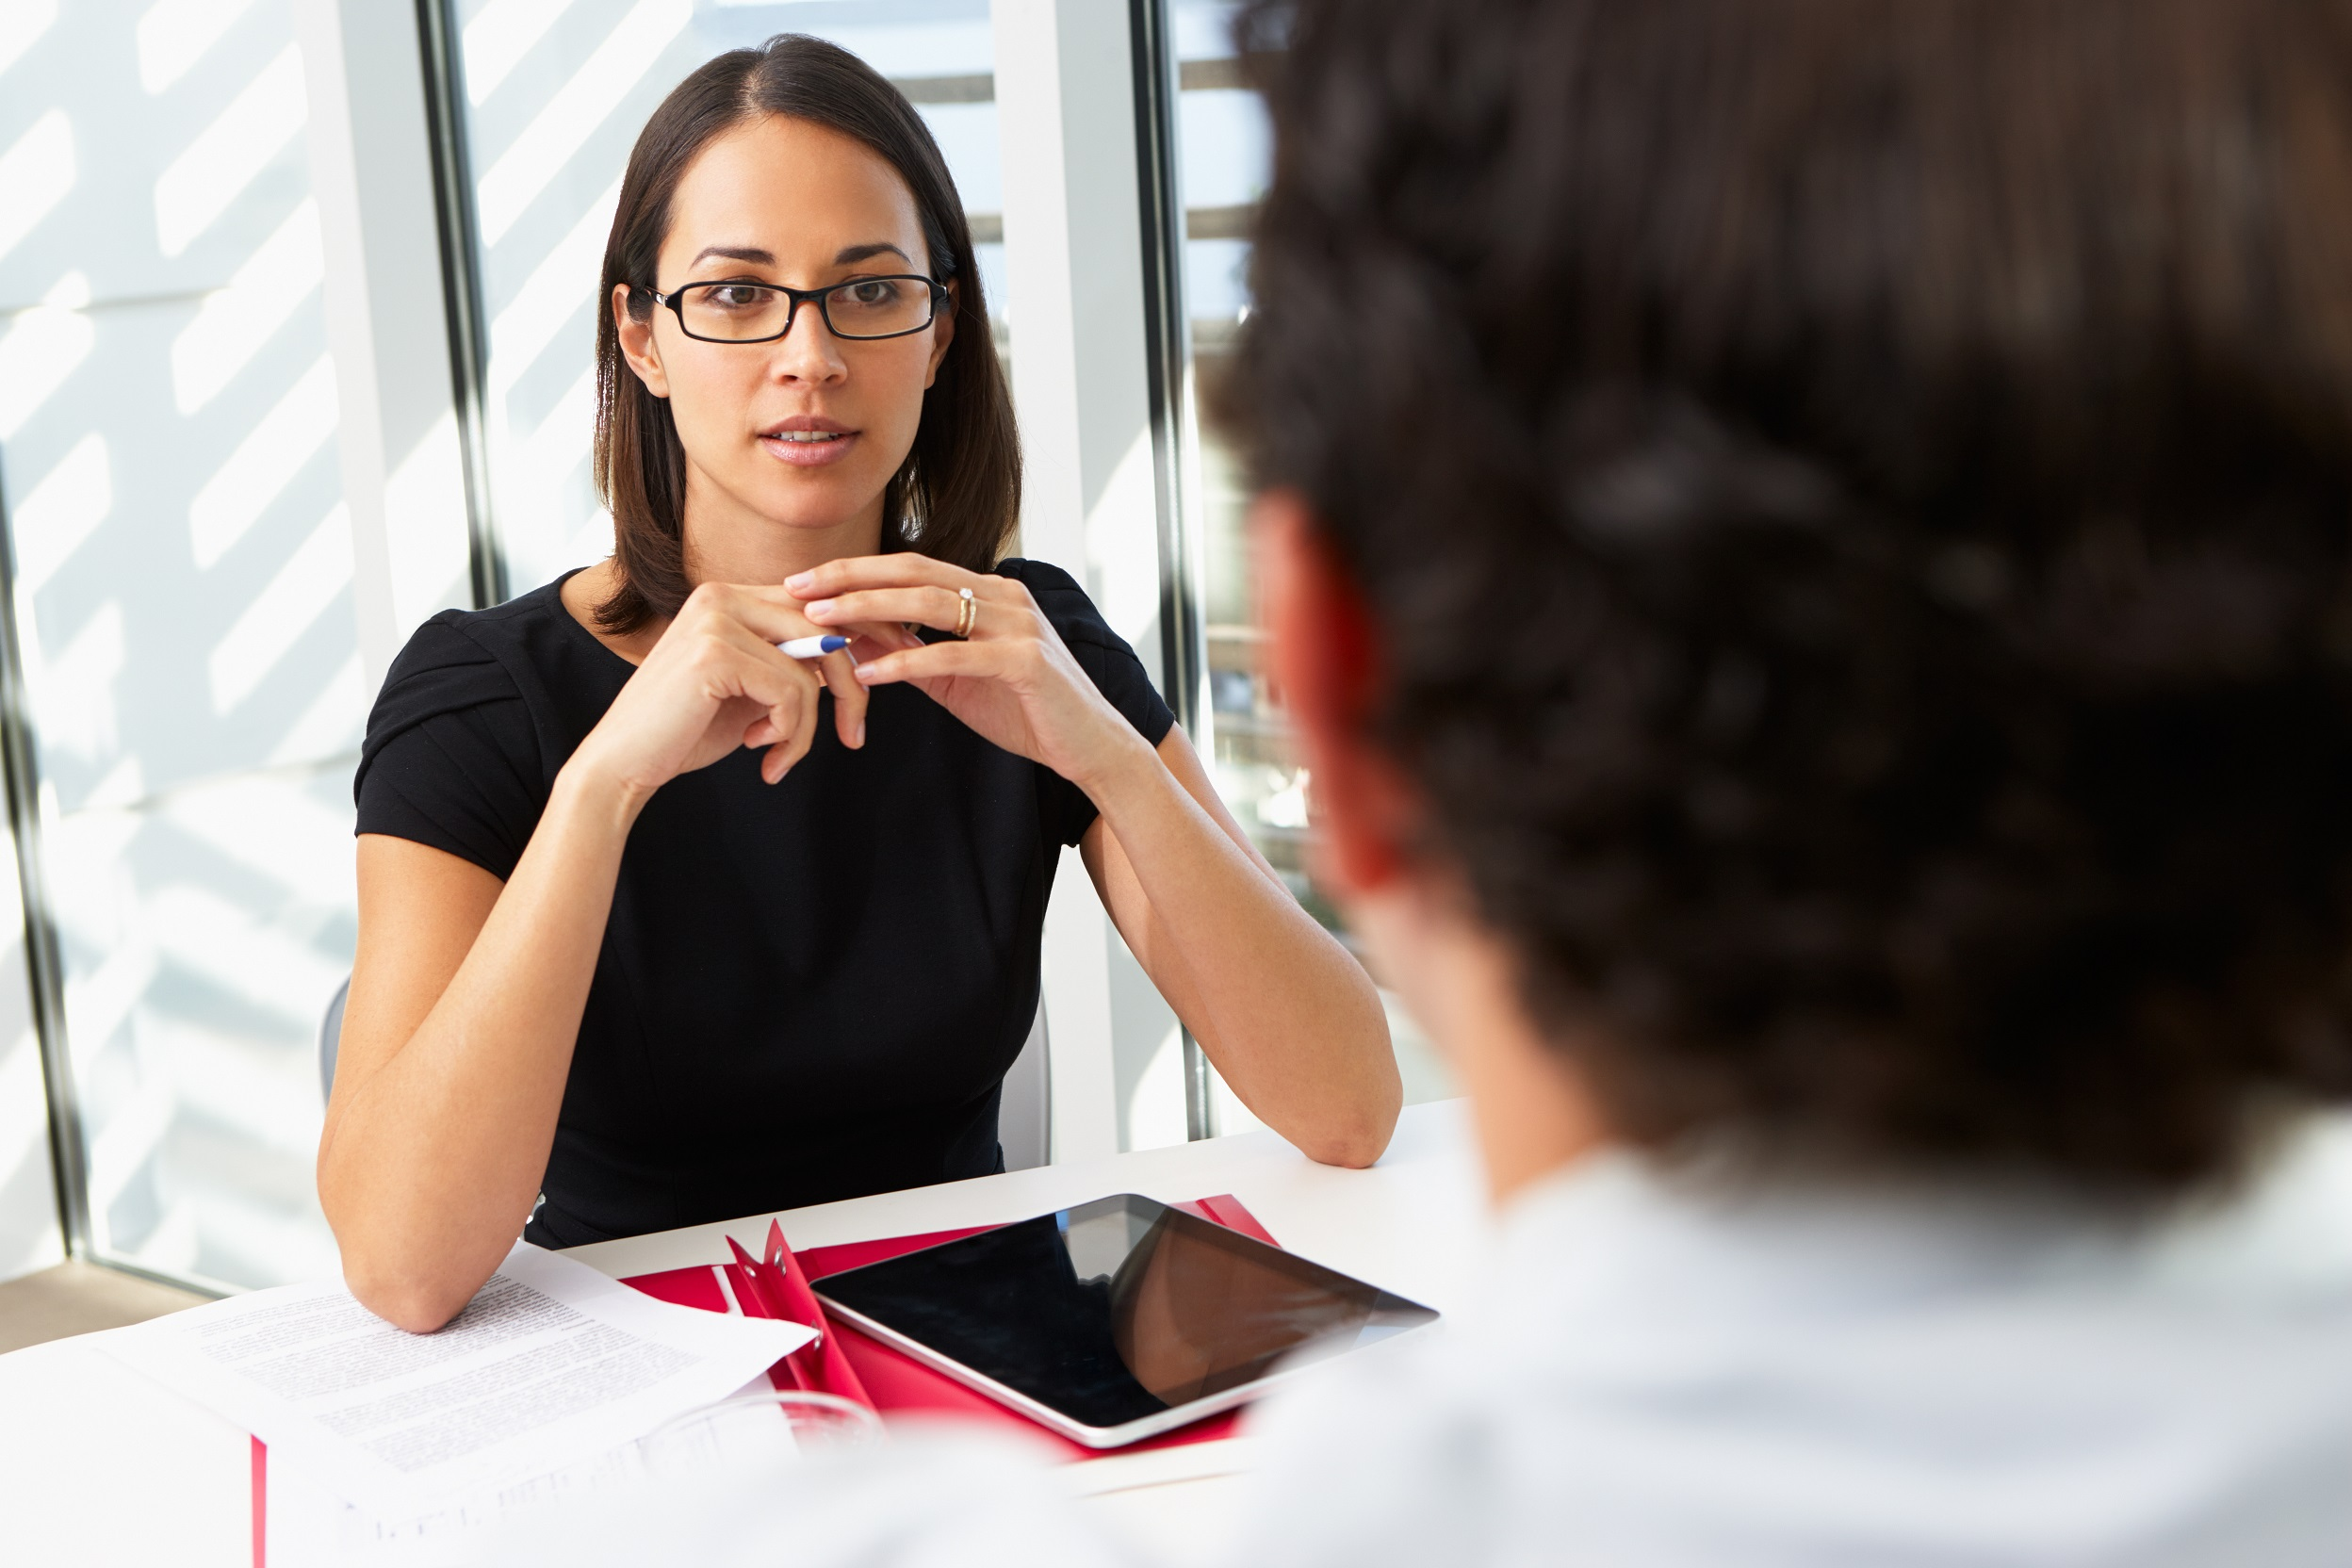 business interview and questions In addition to preparing for the business analyst interview questions and answers, you must also have general knowledge of how to approach an interview for more information on how to get ready and what to expect, check out this course on preparing for your interview.